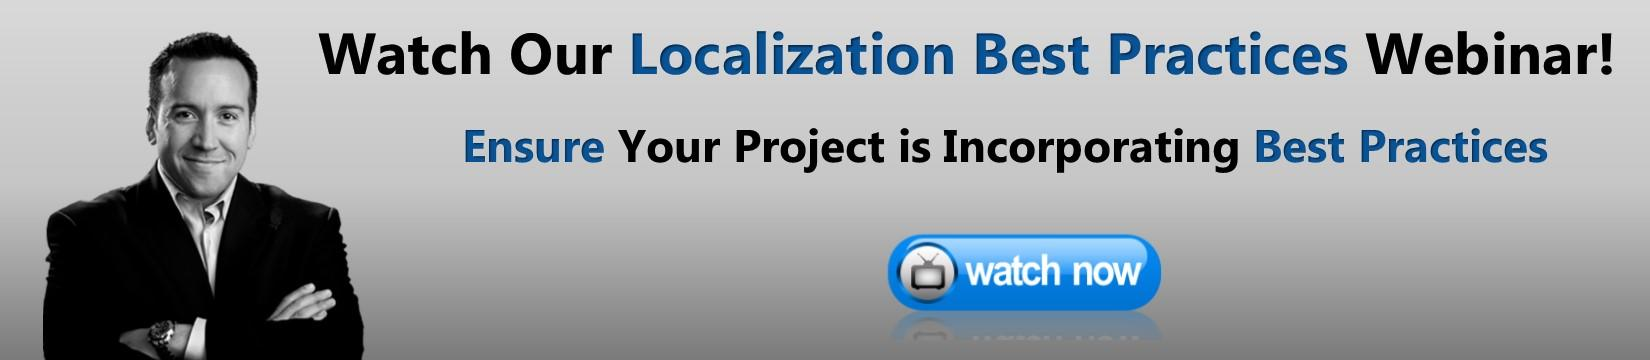 localization best practices webinar